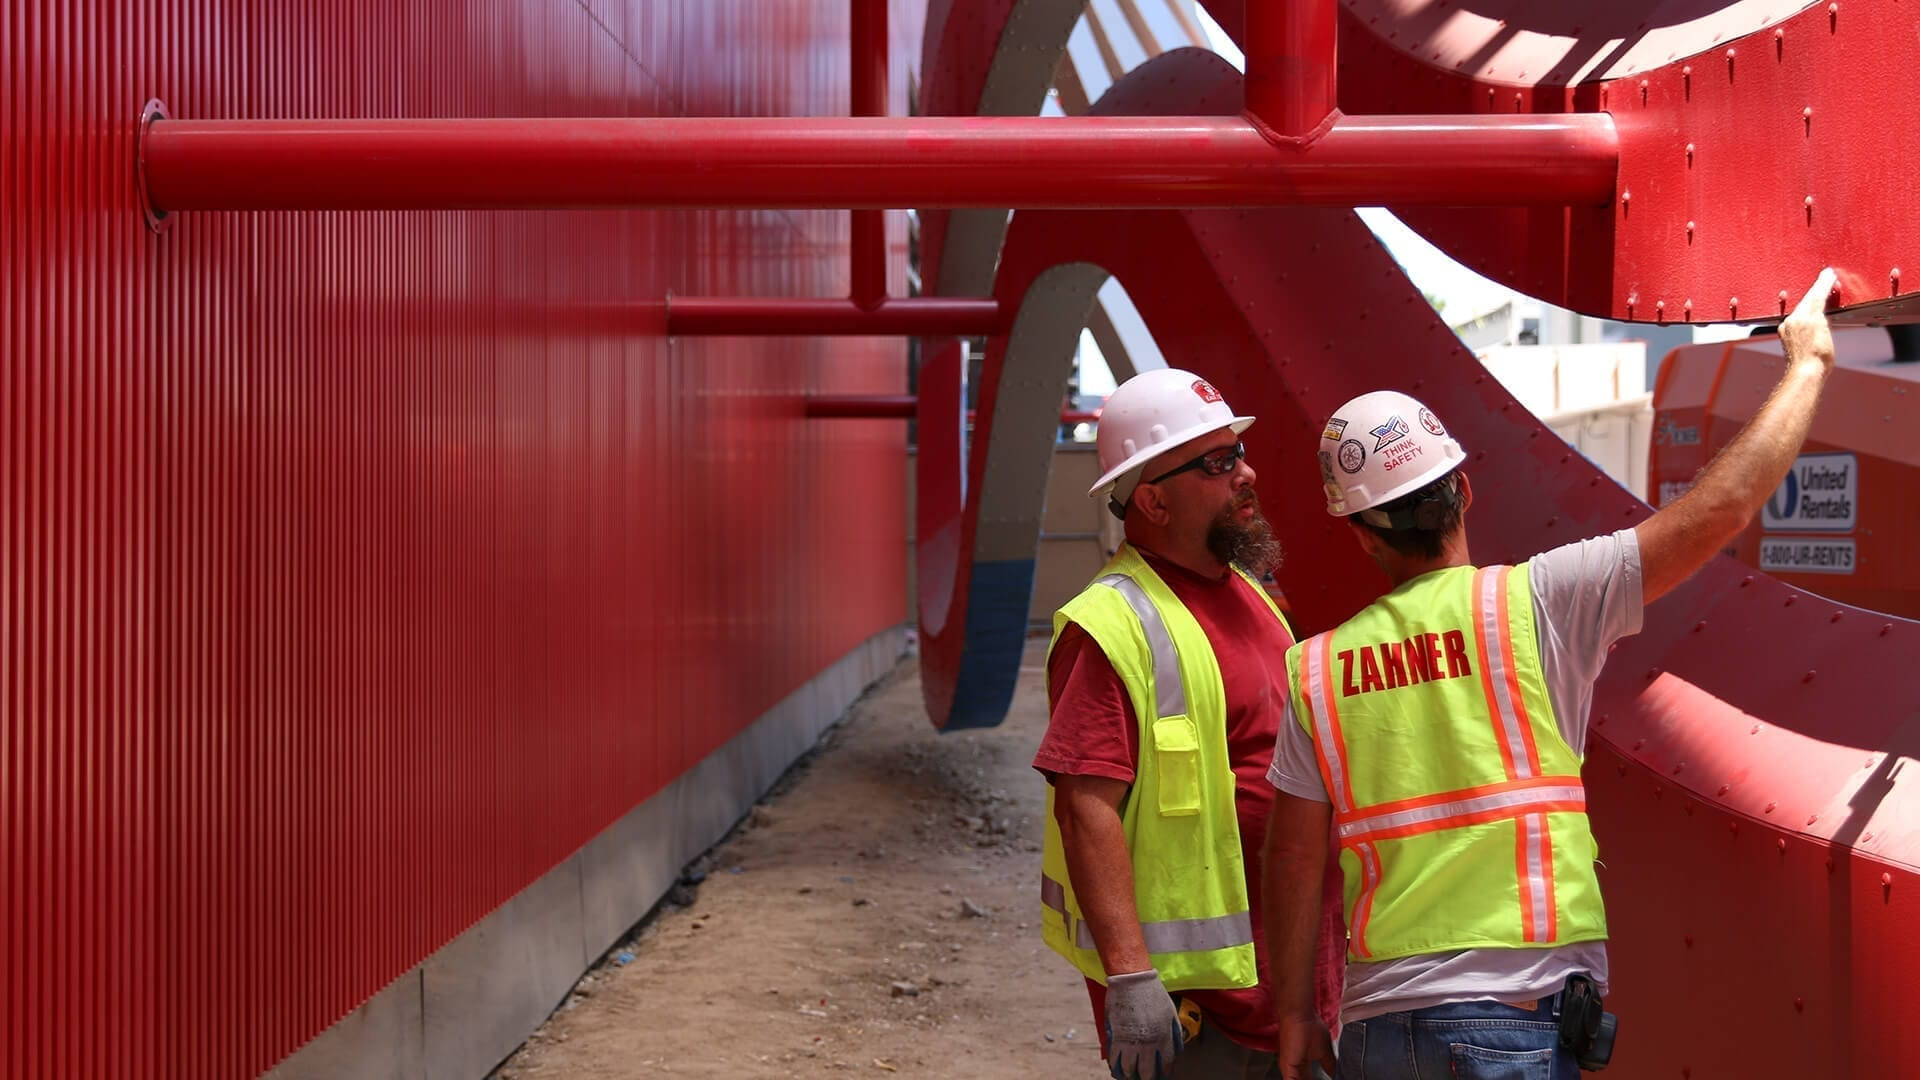 Zahner field installers at the construction site for the Petersen Automotive Museum.